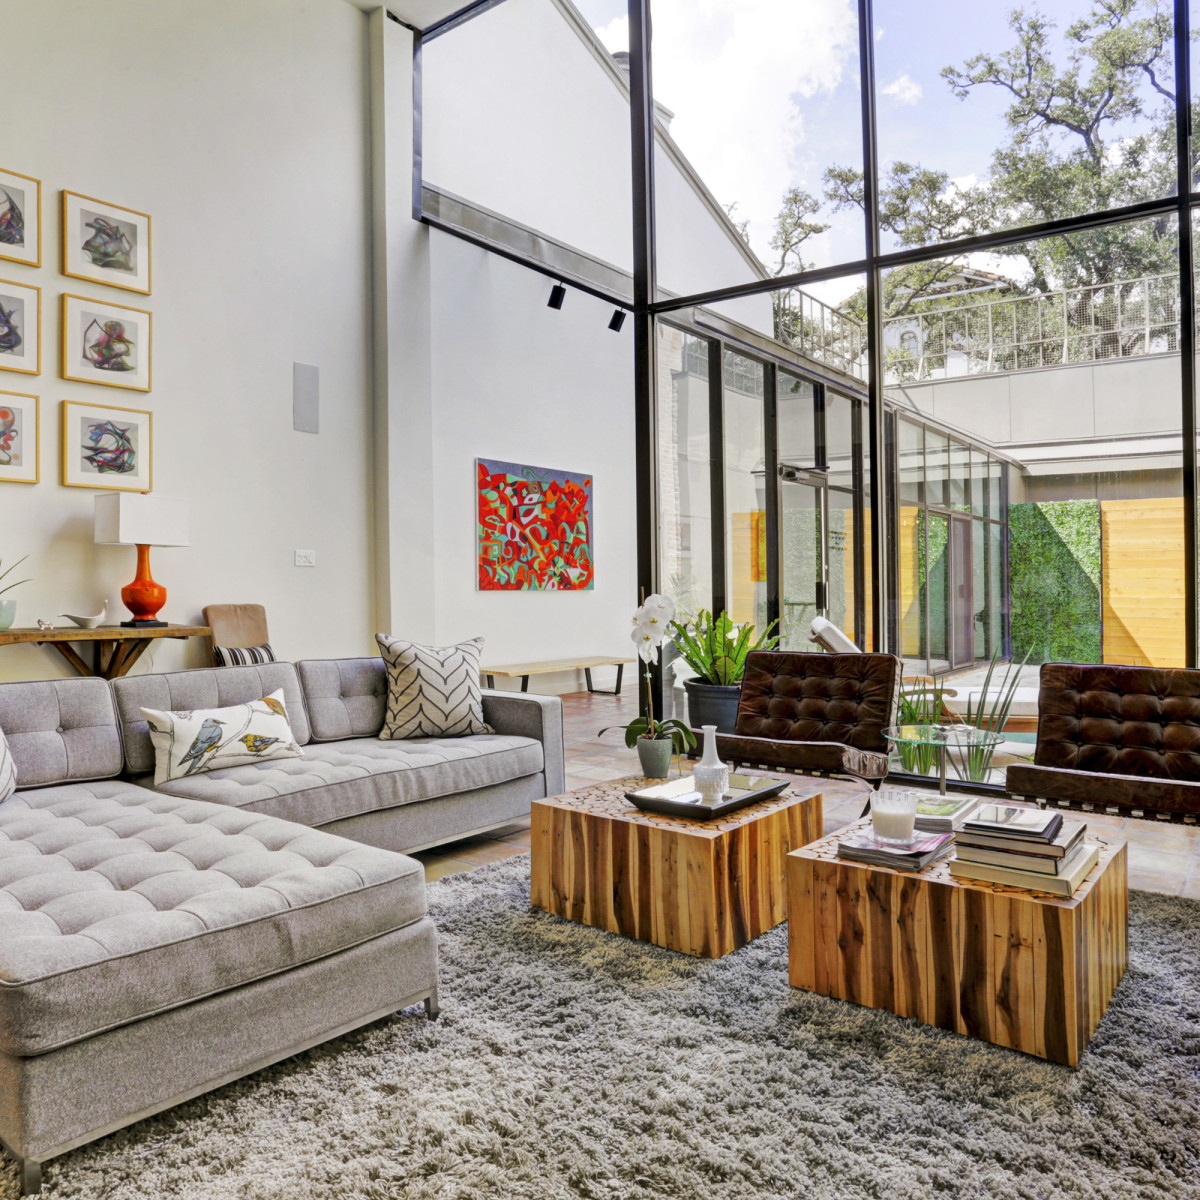 Houston, 1203 Berthea, September 2015, living